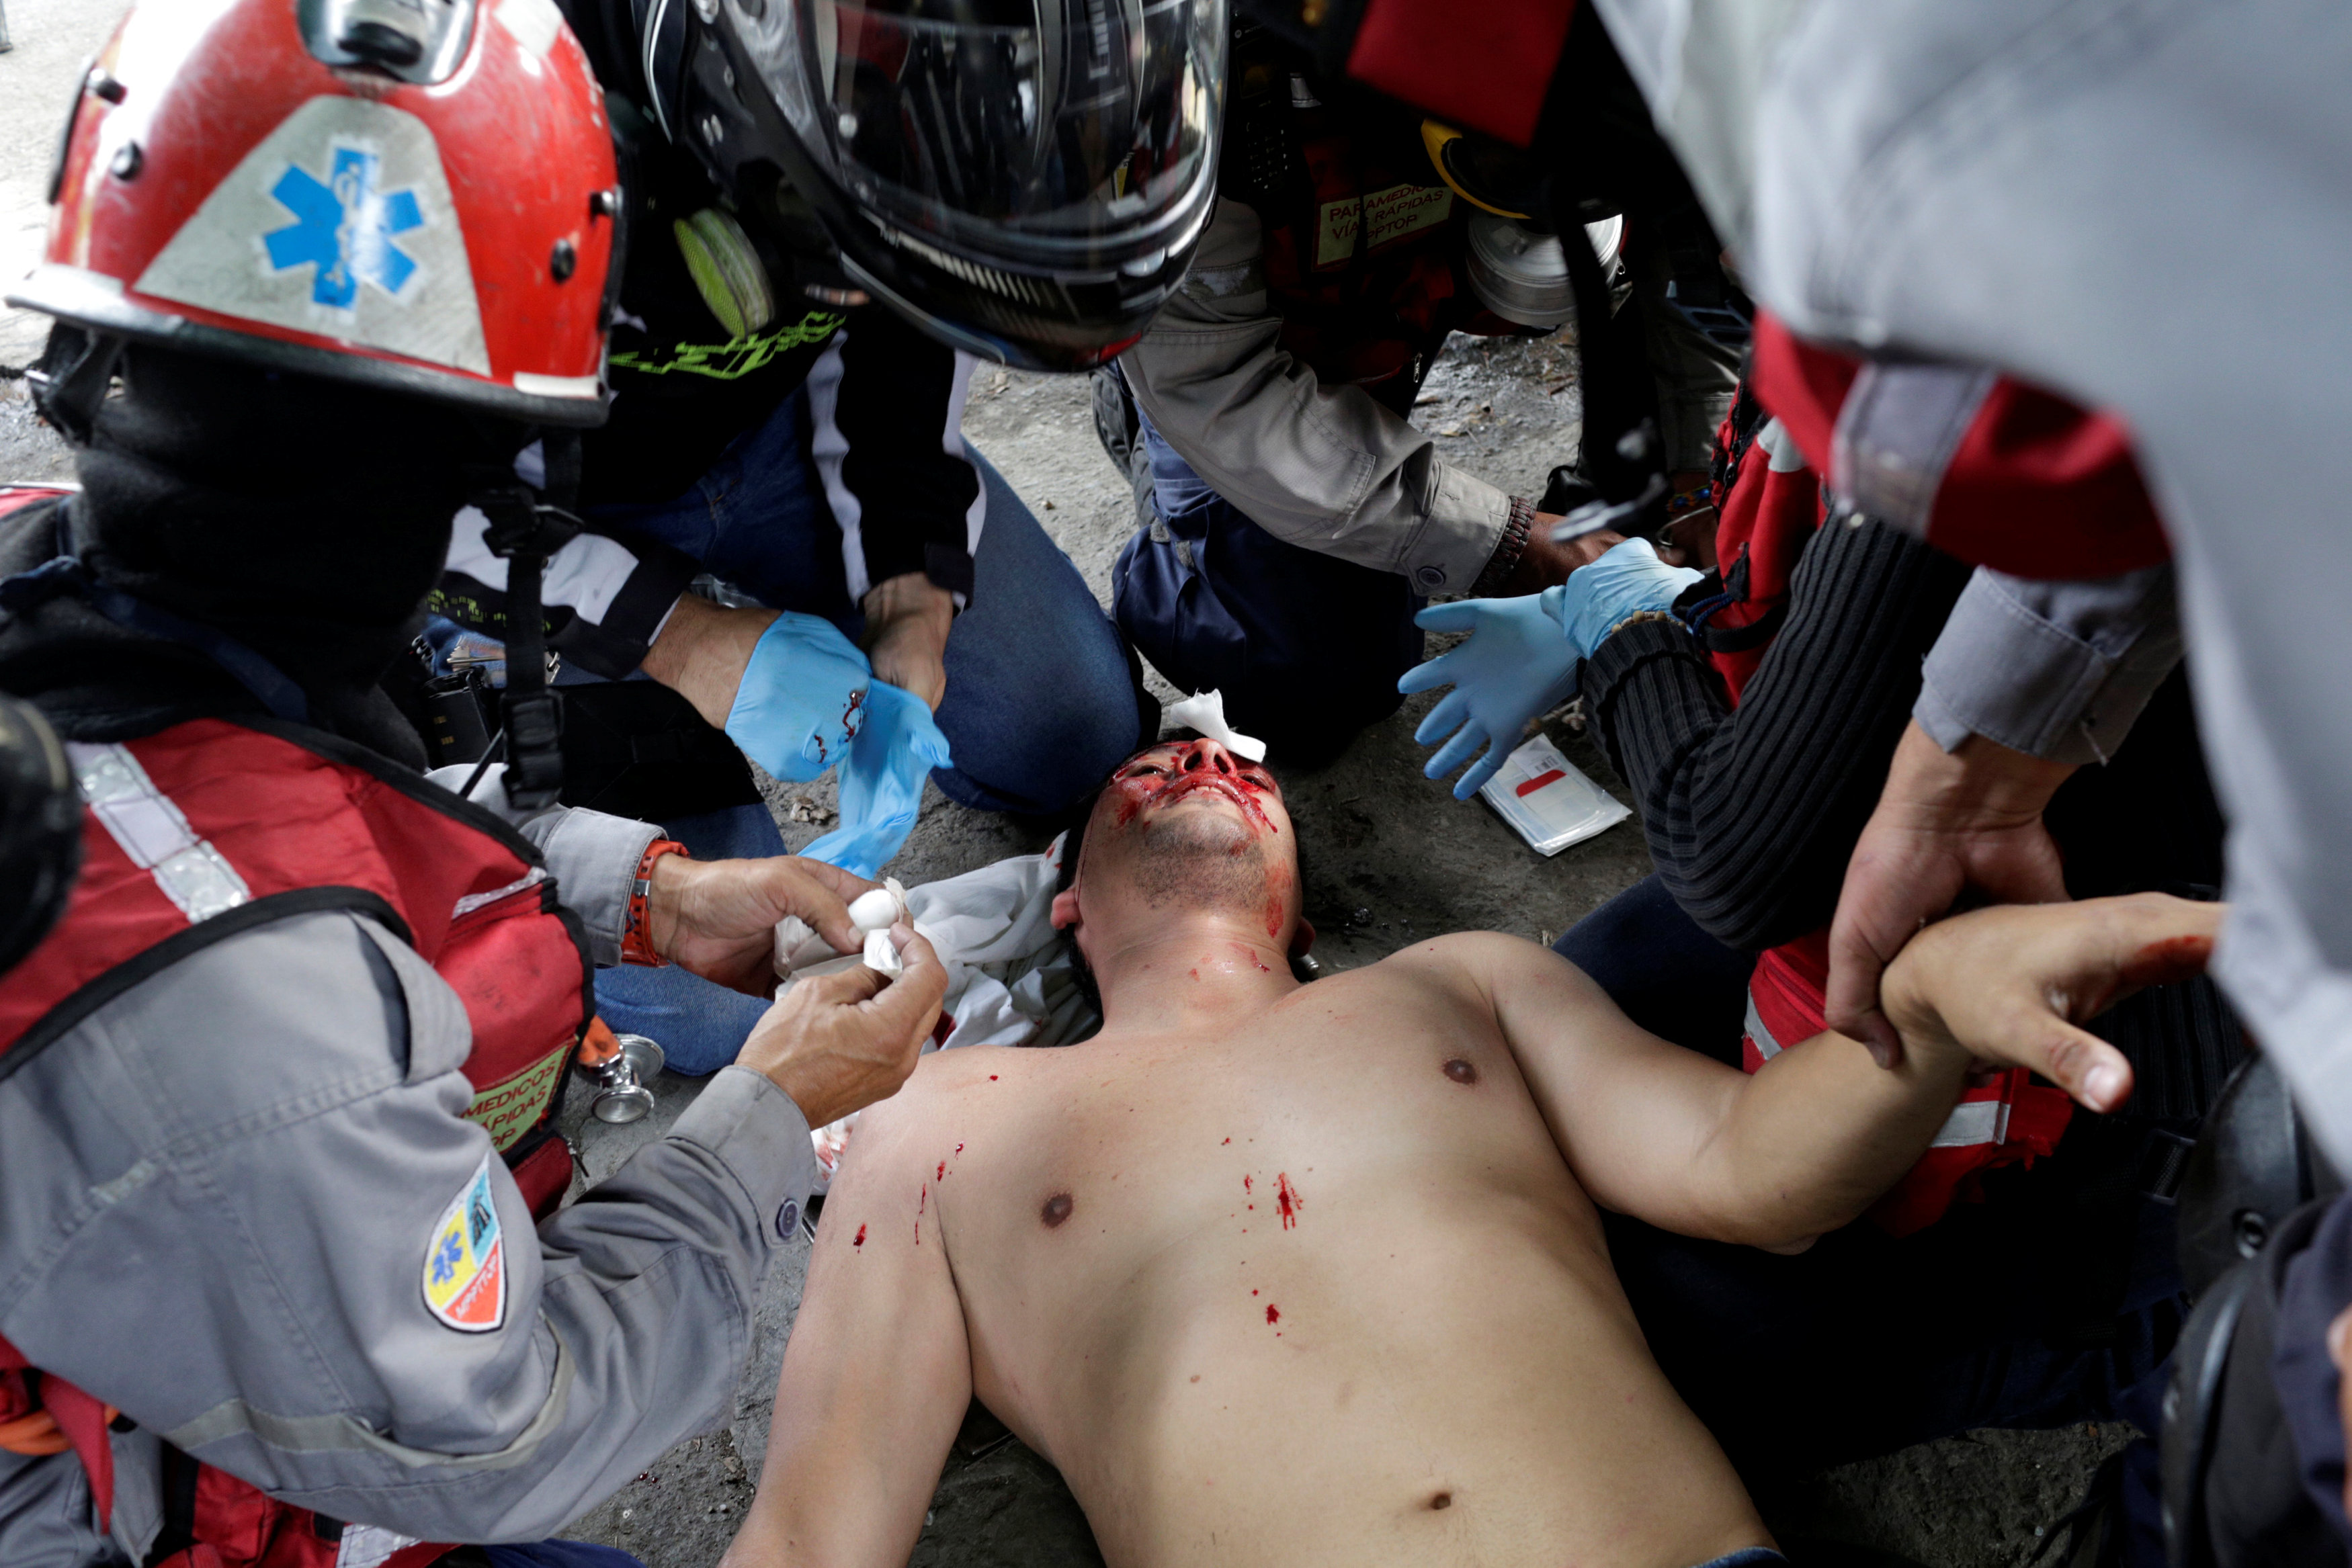 ATTENTION EDITORS - VISUAL COVERAGE OF SCENES OF INJURY An injured demonstrator is helped by paramedics during a rally against Venezuela's President Nicolas Maduro in Caracas, Venezuela, May 31, 2017. REUTERS/Marco BelloTEMPLATE OUT